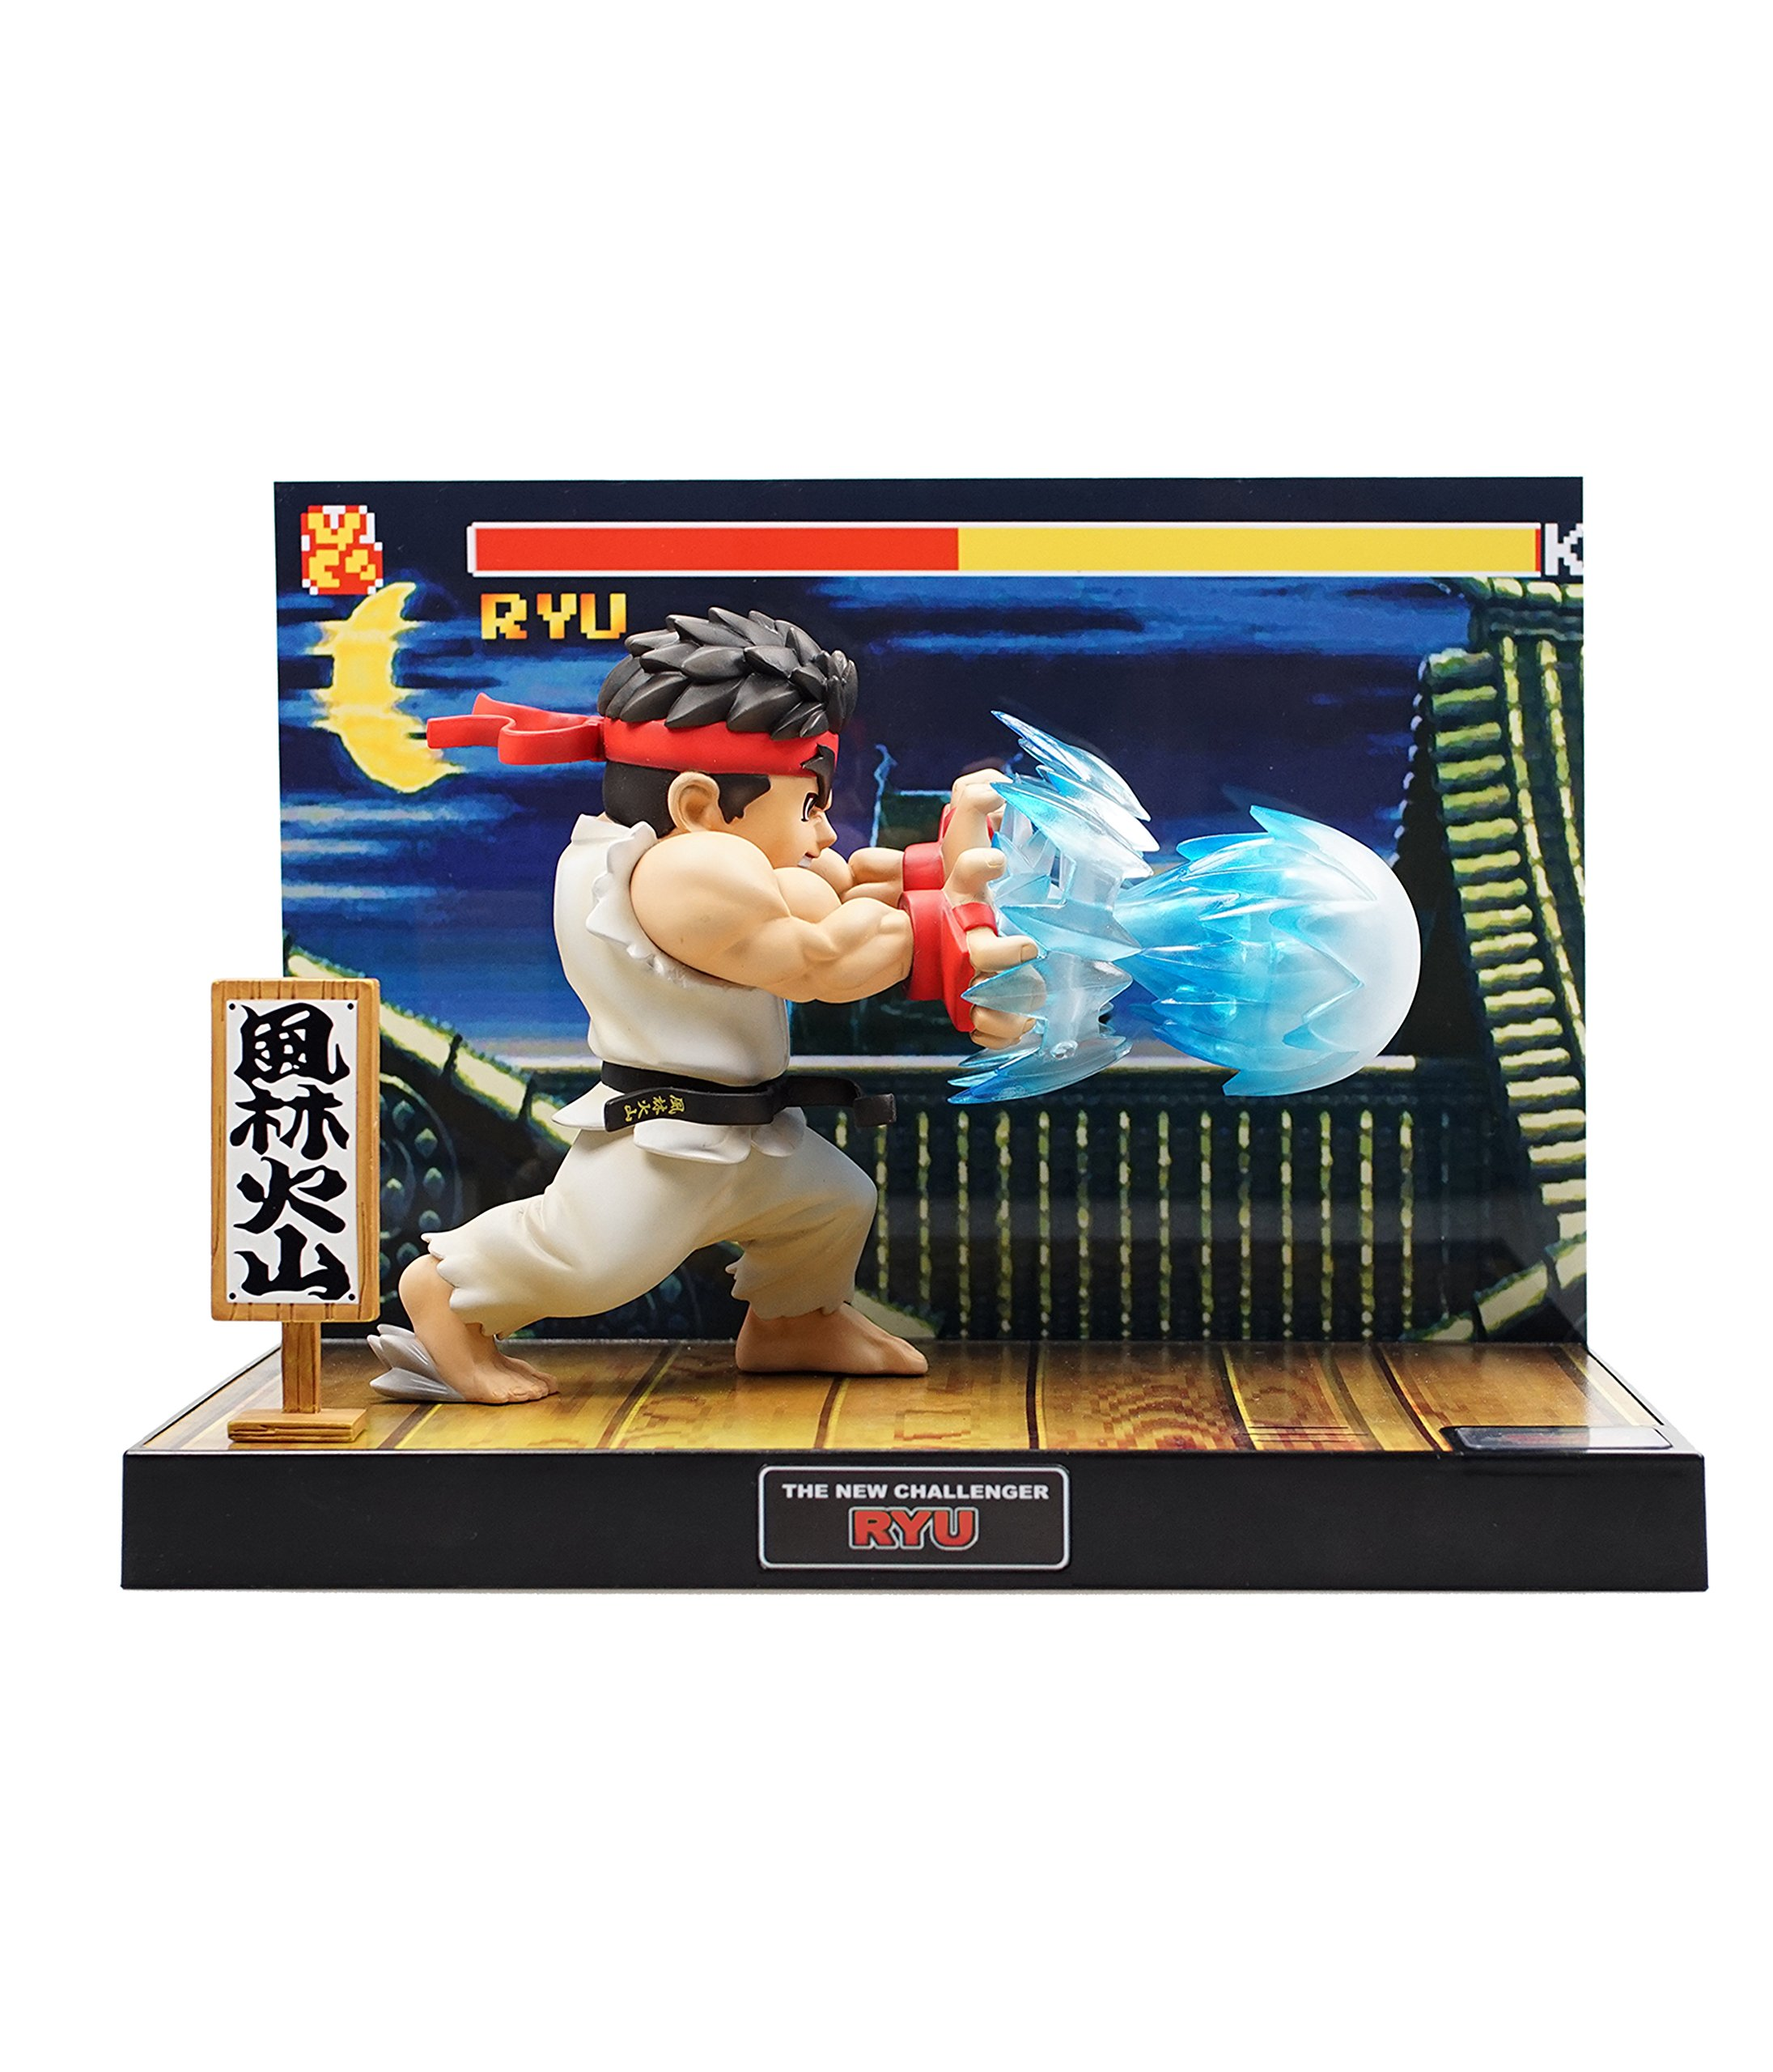 Tier1 Accessories Ryu Street Fighter Fully Licensed LED Light and Sound Figure - PlayStation 3;PlayStation 2;PlayStation;